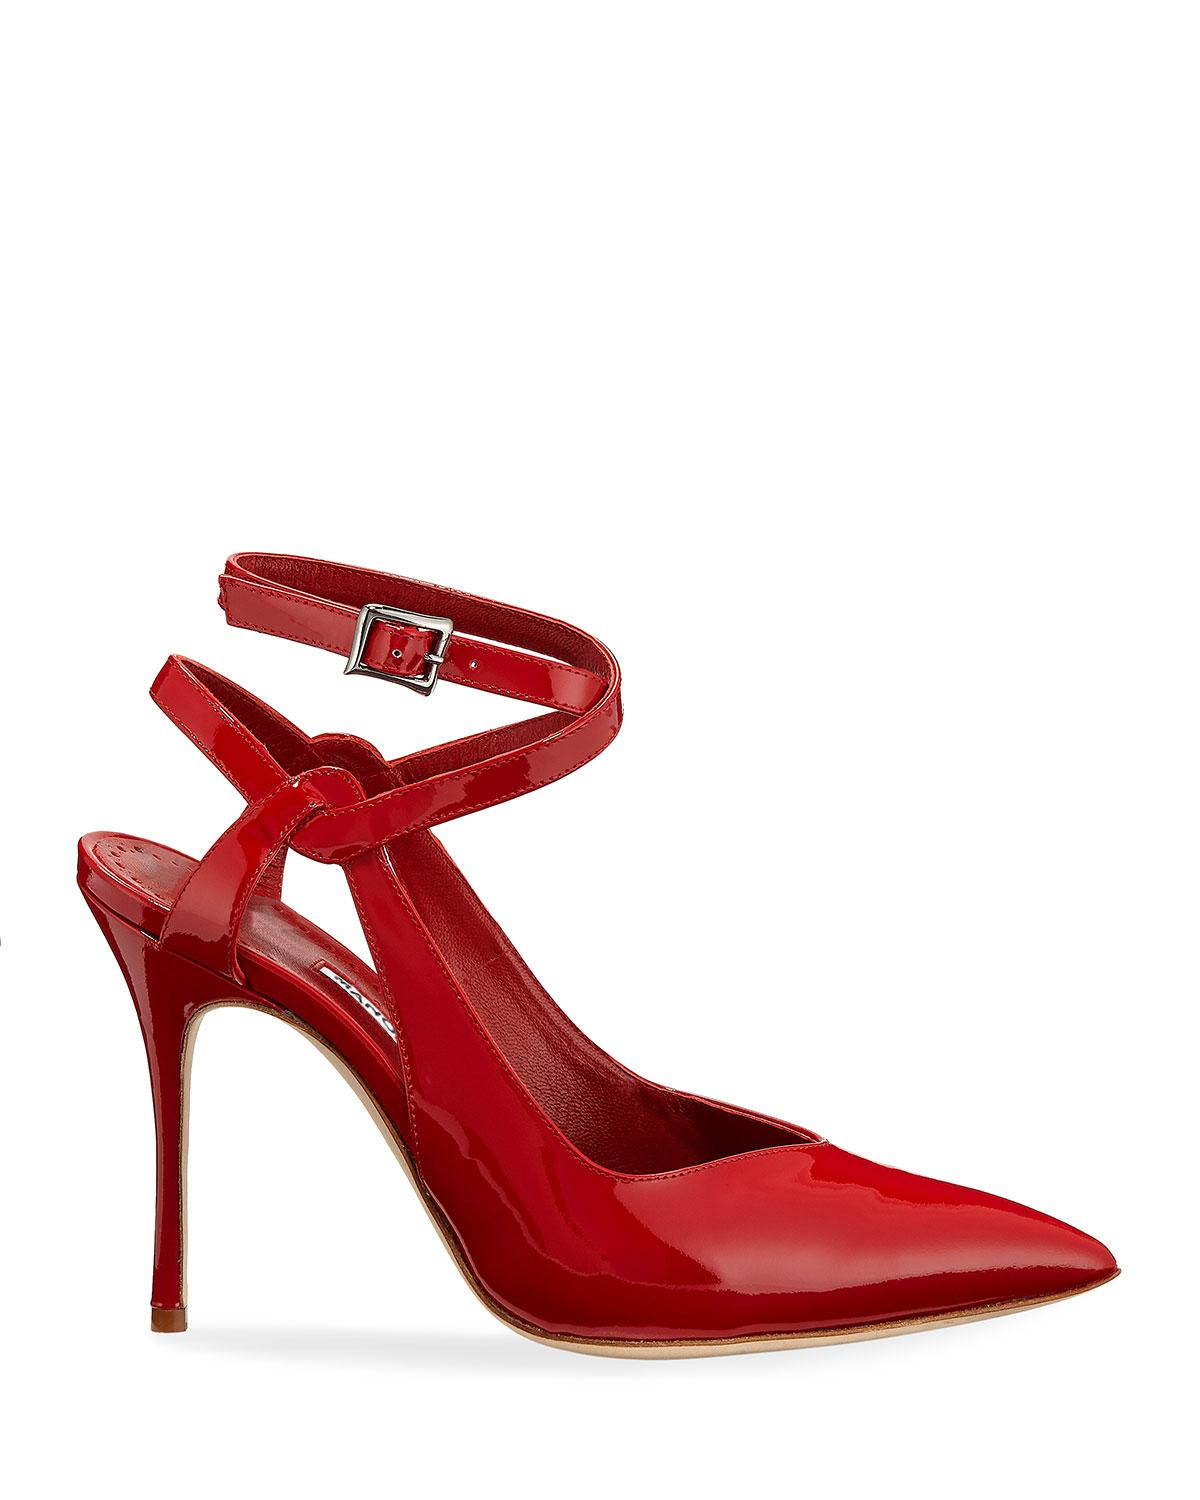 cc86d5b8f9ab Lyst - Manolo Blahnik Lero Patent Leather Crisscross Ankle-strap Pumps in  Red